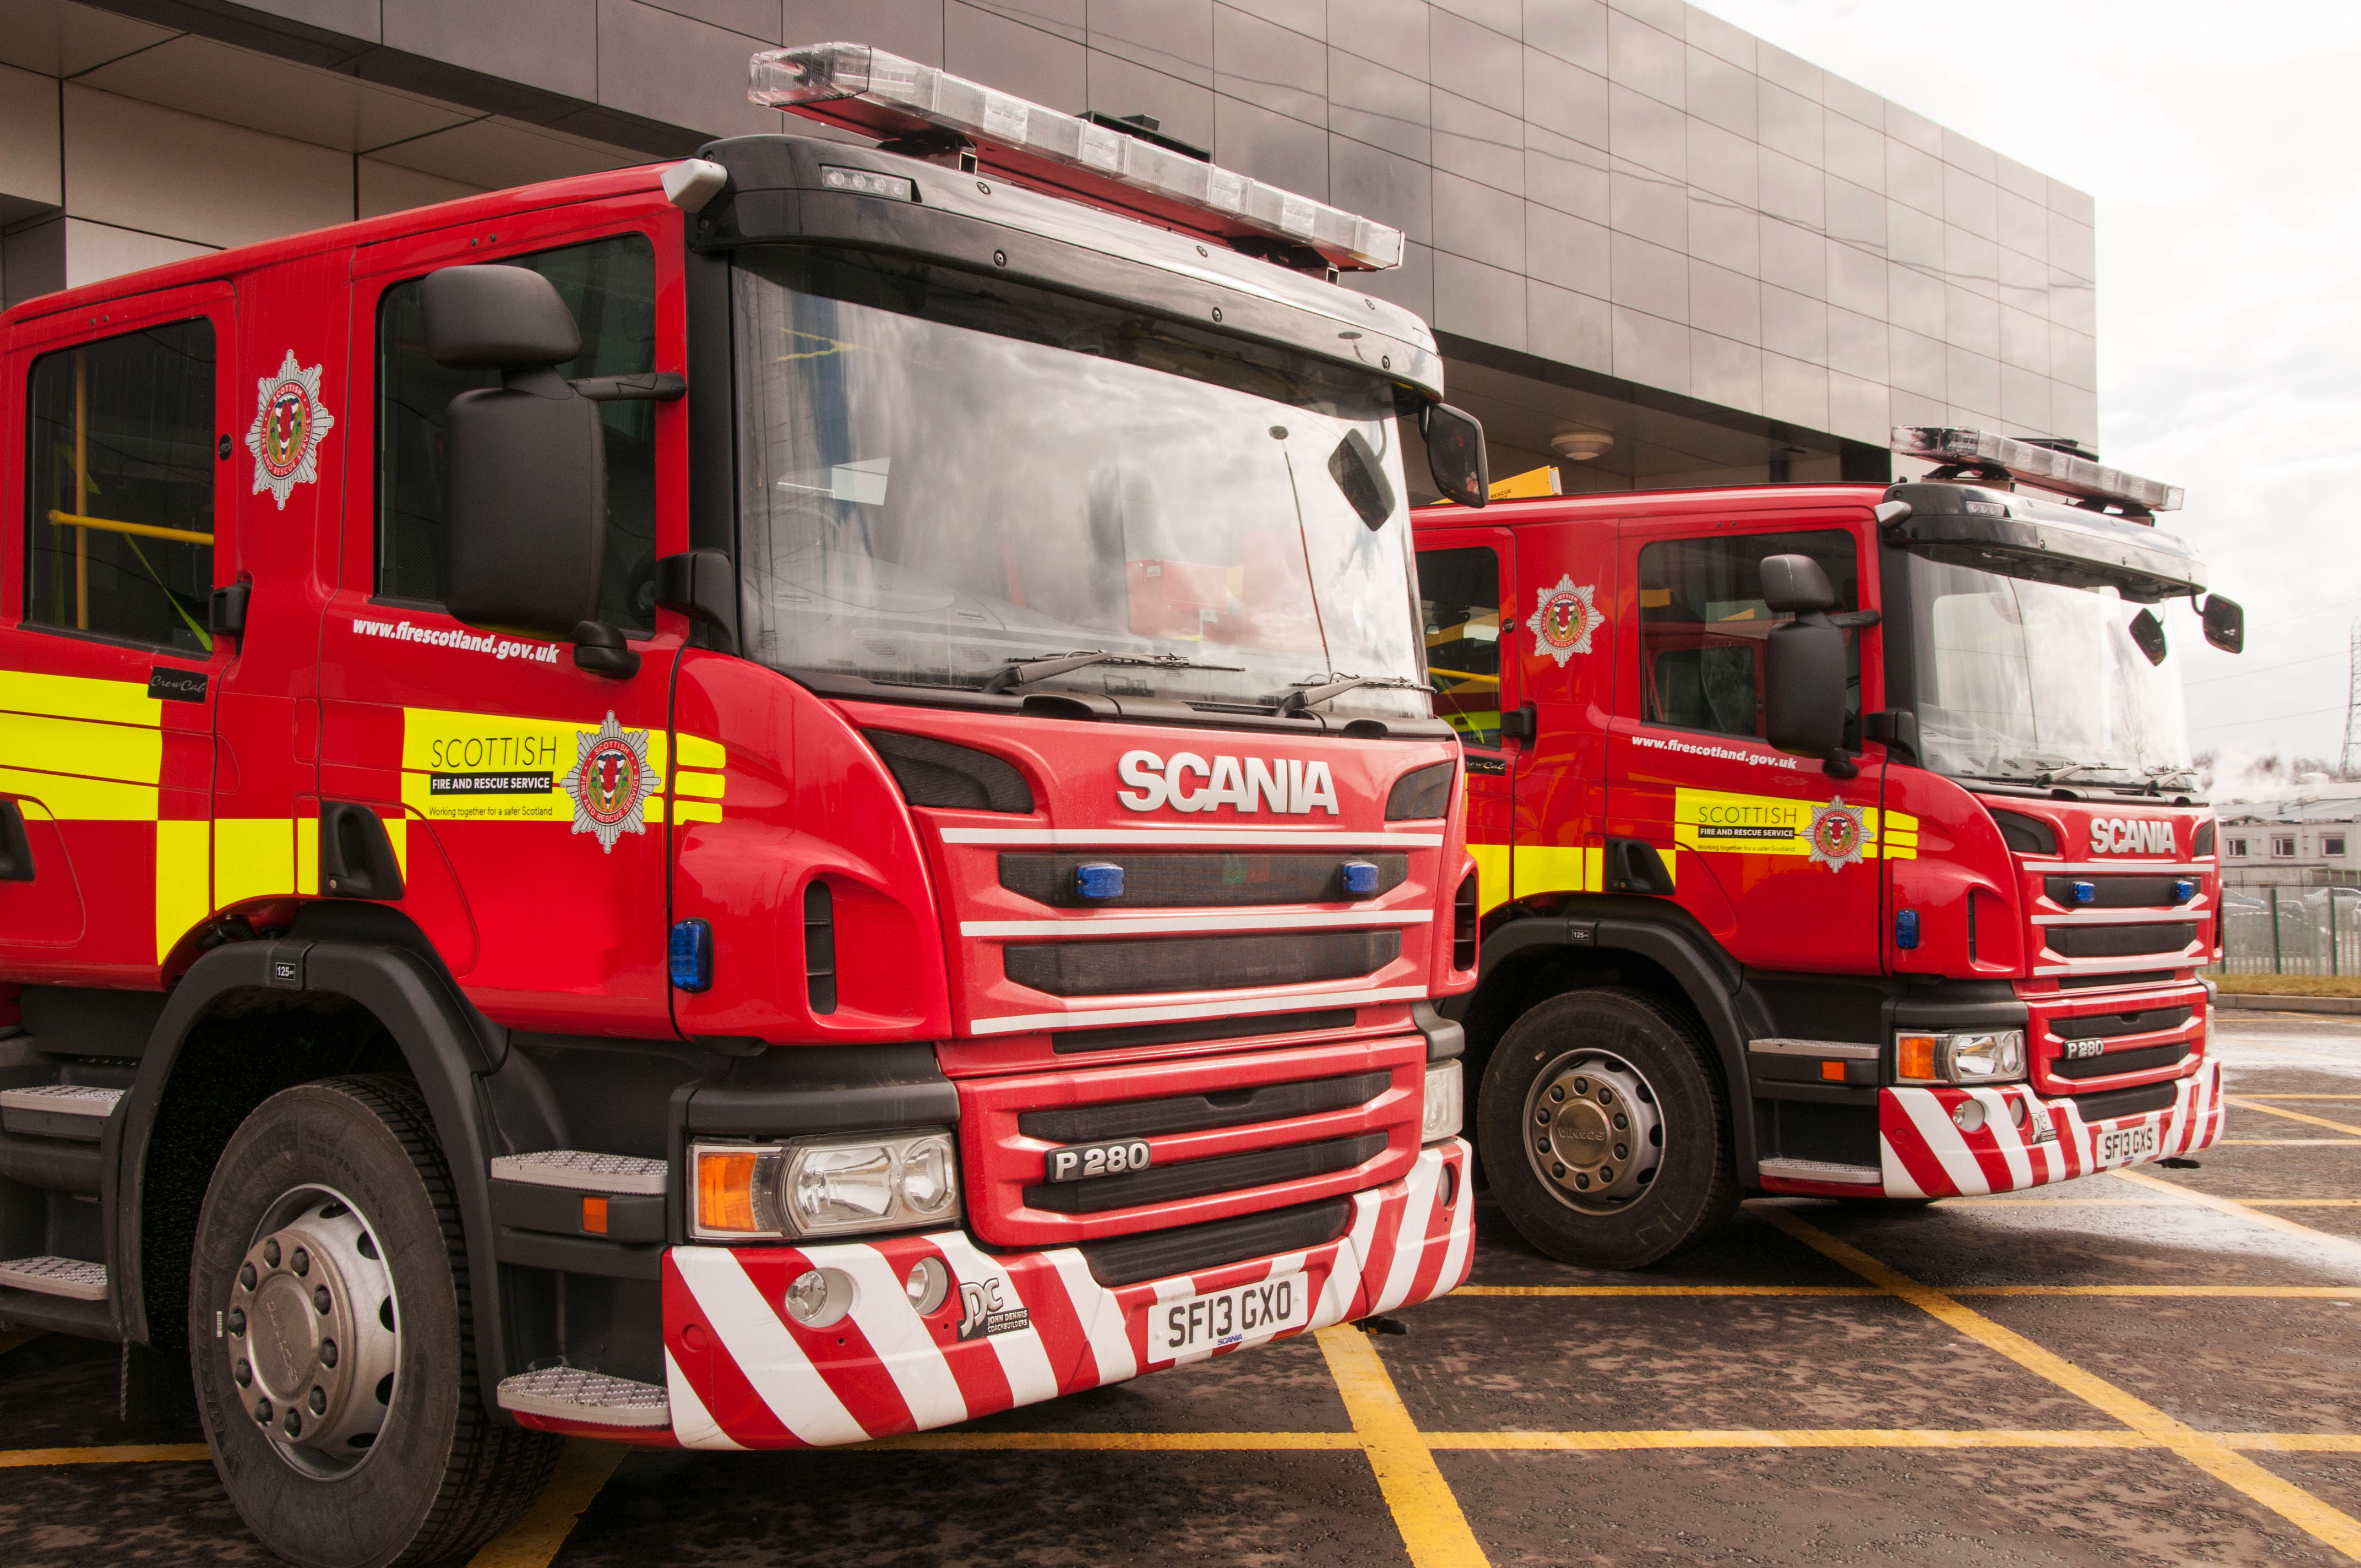 Two treated for smoke inhalation in North Lanarkshire